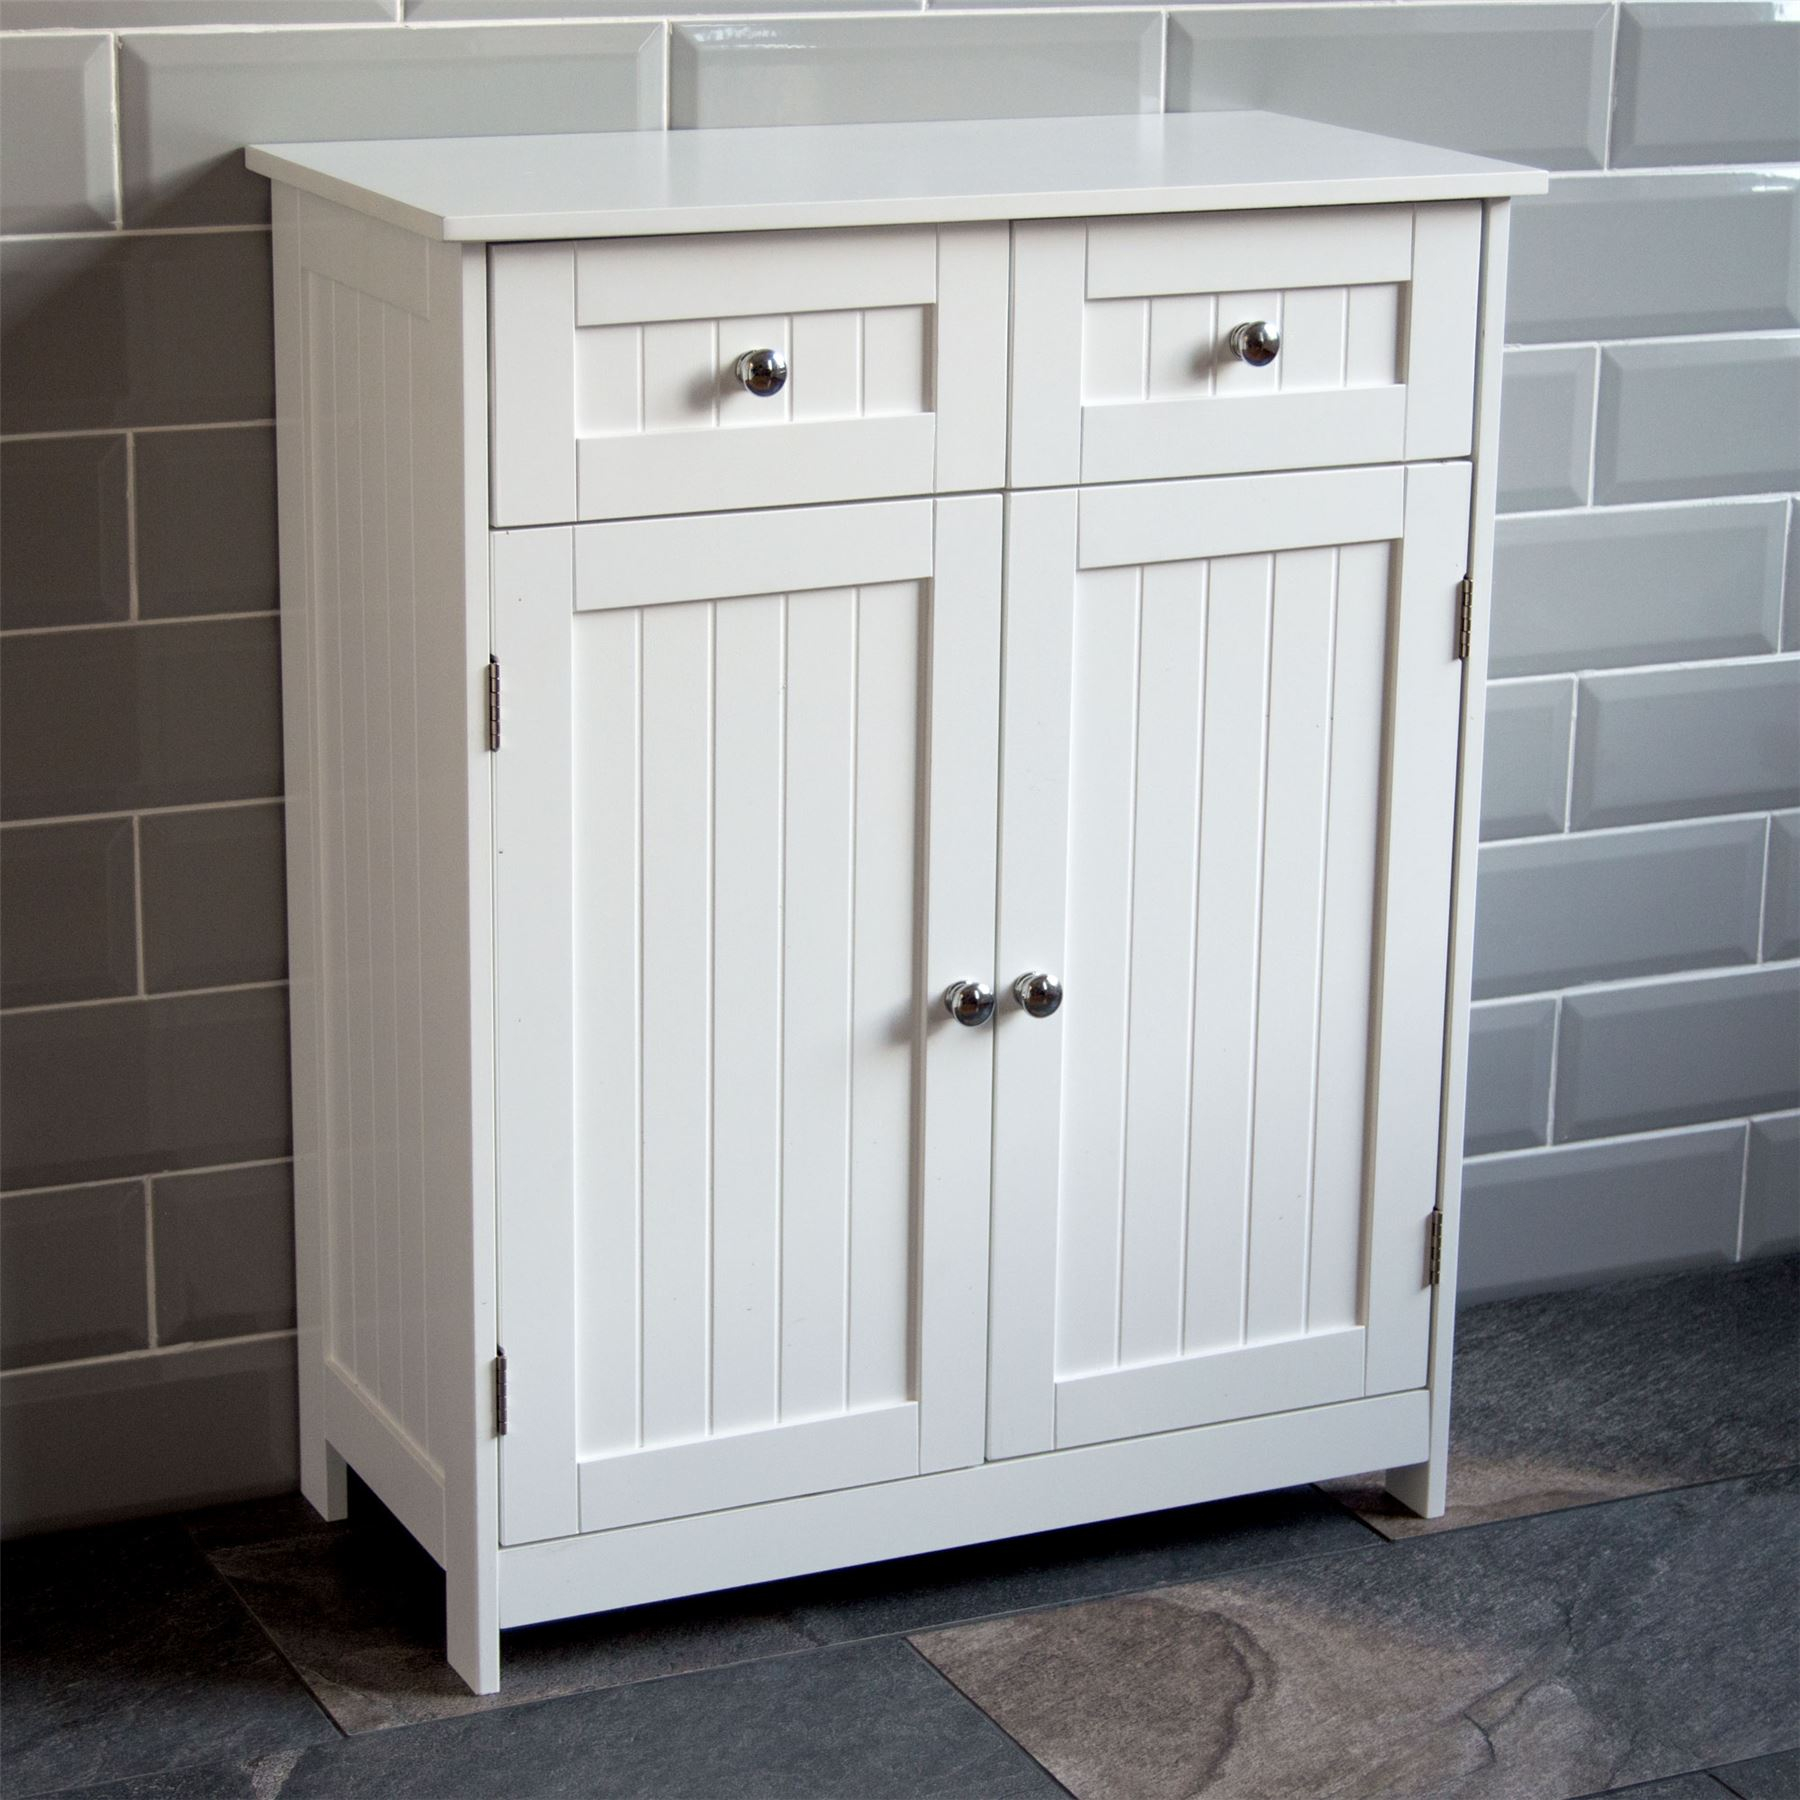 Details About Priano Bathroom Cabinet 2 Drawer 2 Door Storage Cupboard Unit Furniture White with measurements 1800 X 1800